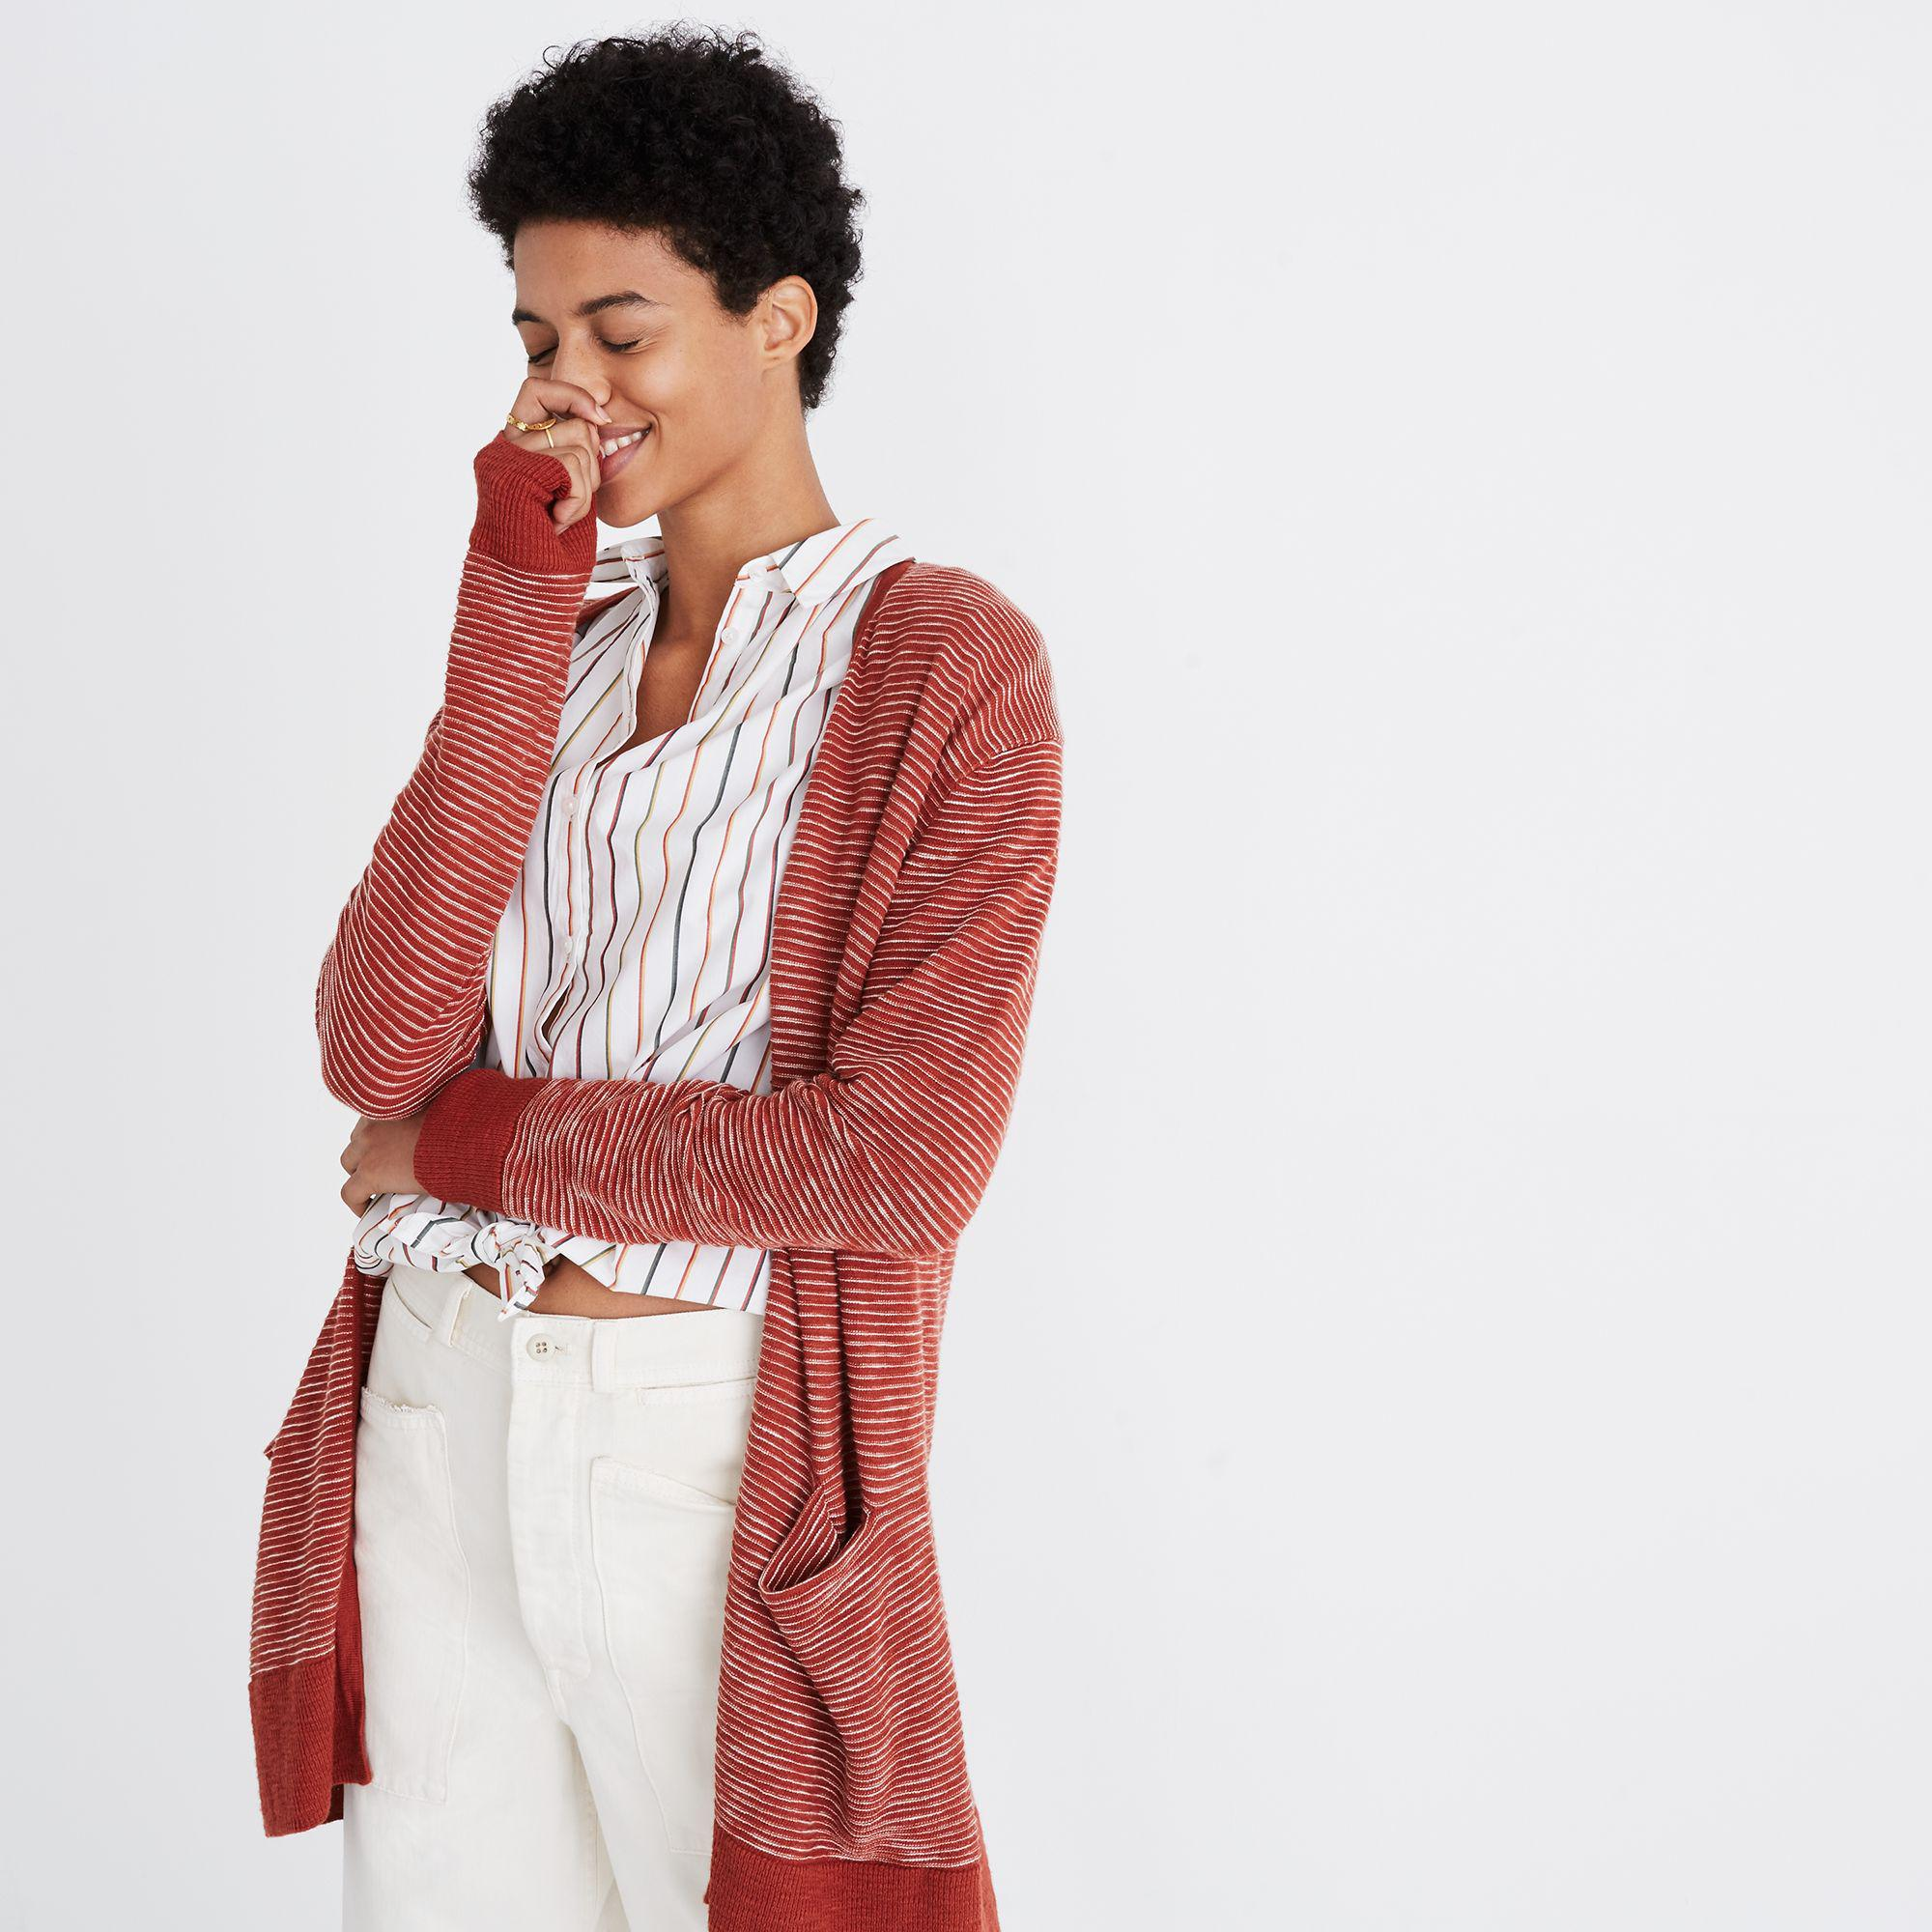 Lyst - Madewell Summer Ryder Cardigan Sweater In Stripe in Red 391be7f92